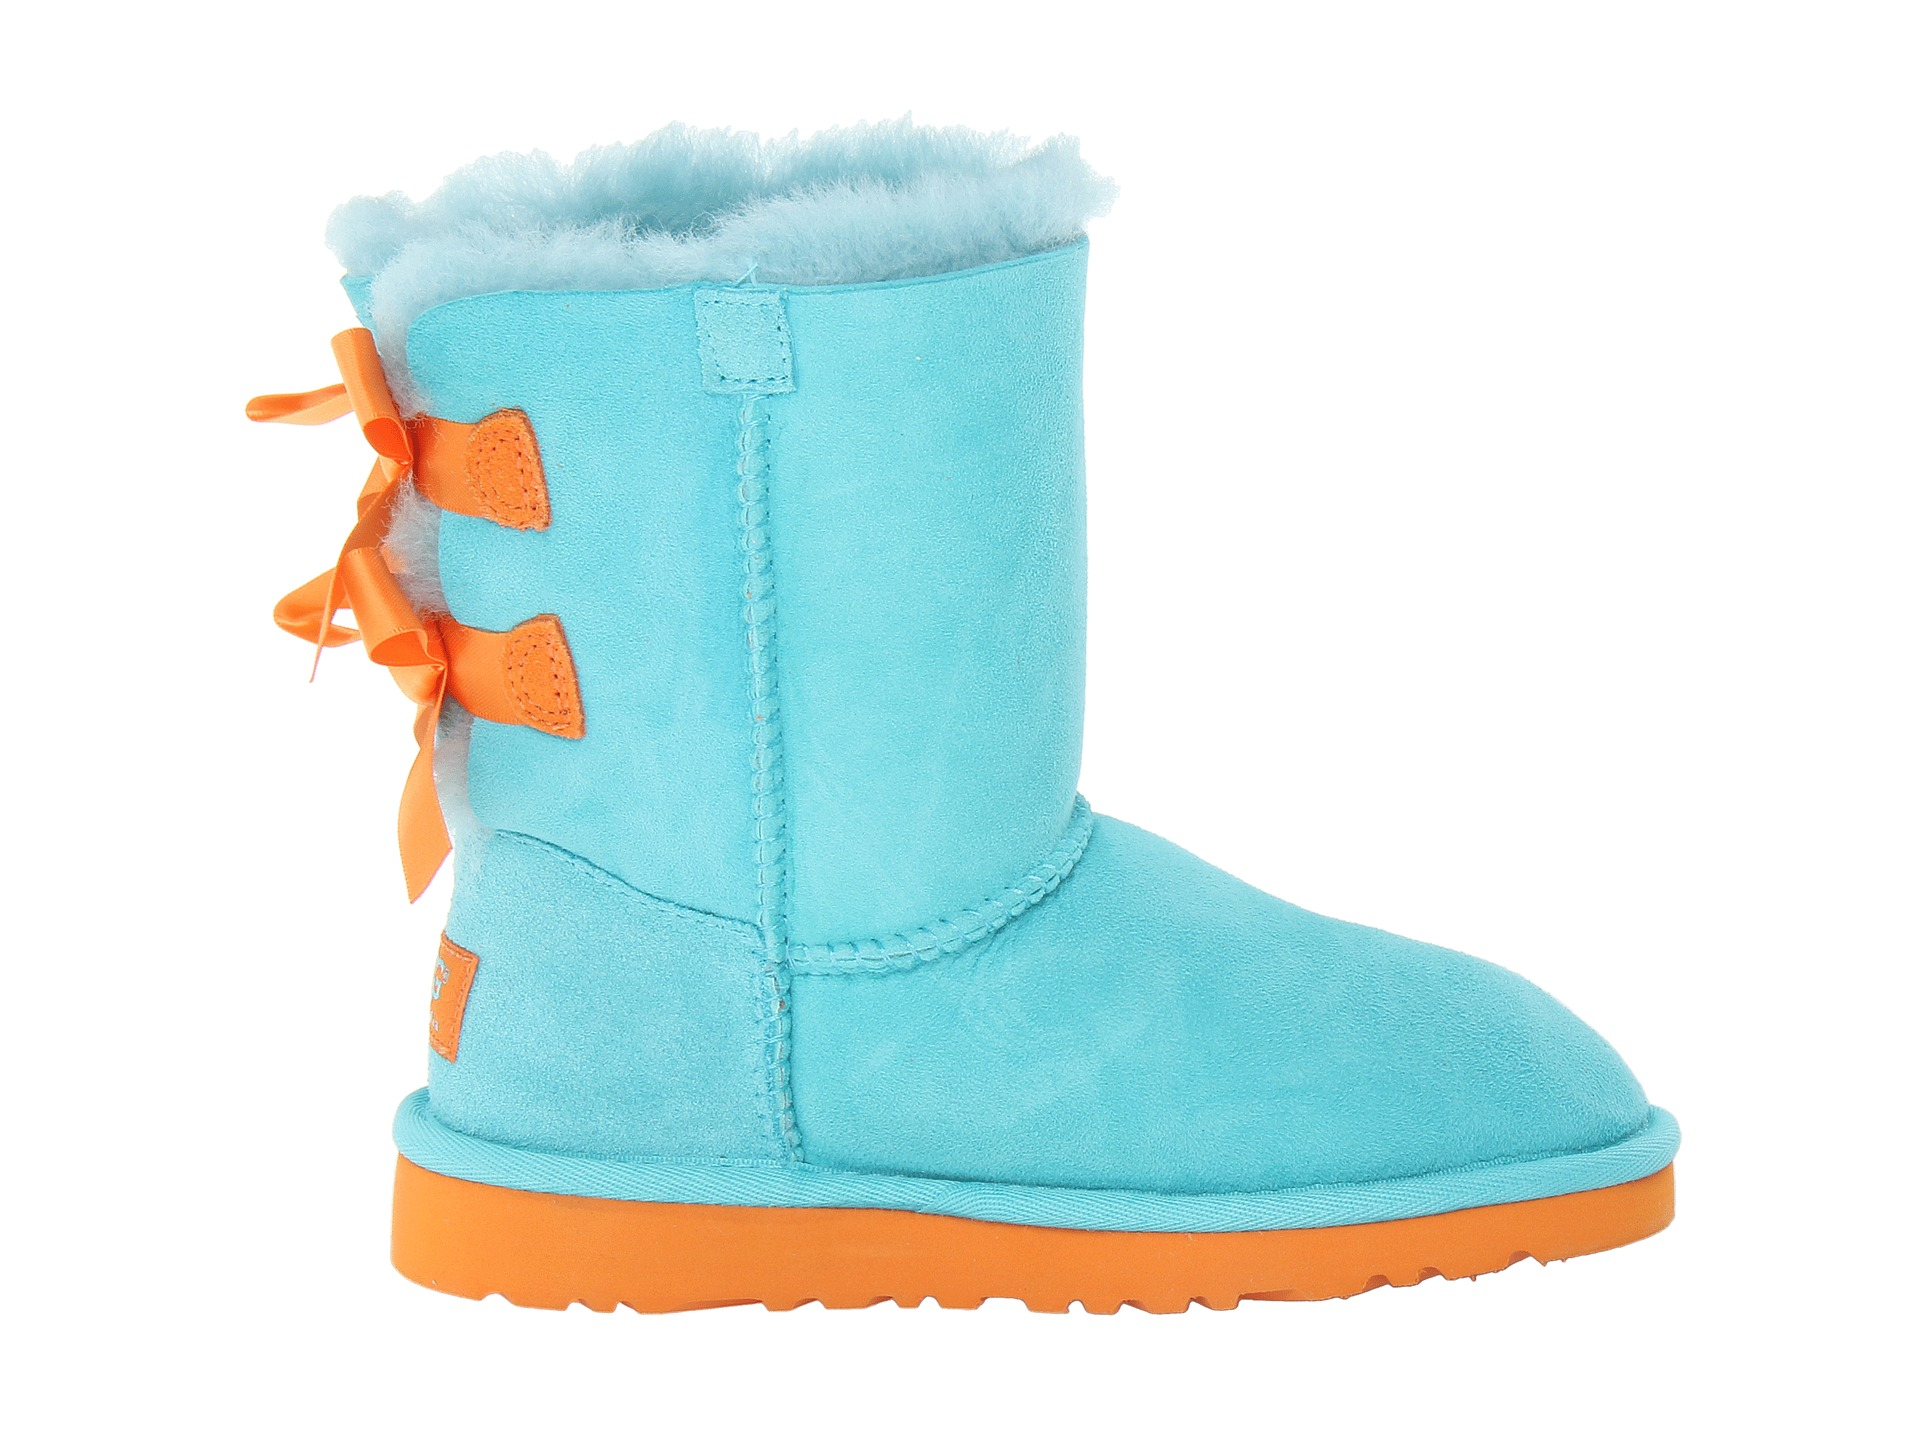 42c73f5ae12 Blue Curacao Ugg Boots - cheap watches mgc-gas.com